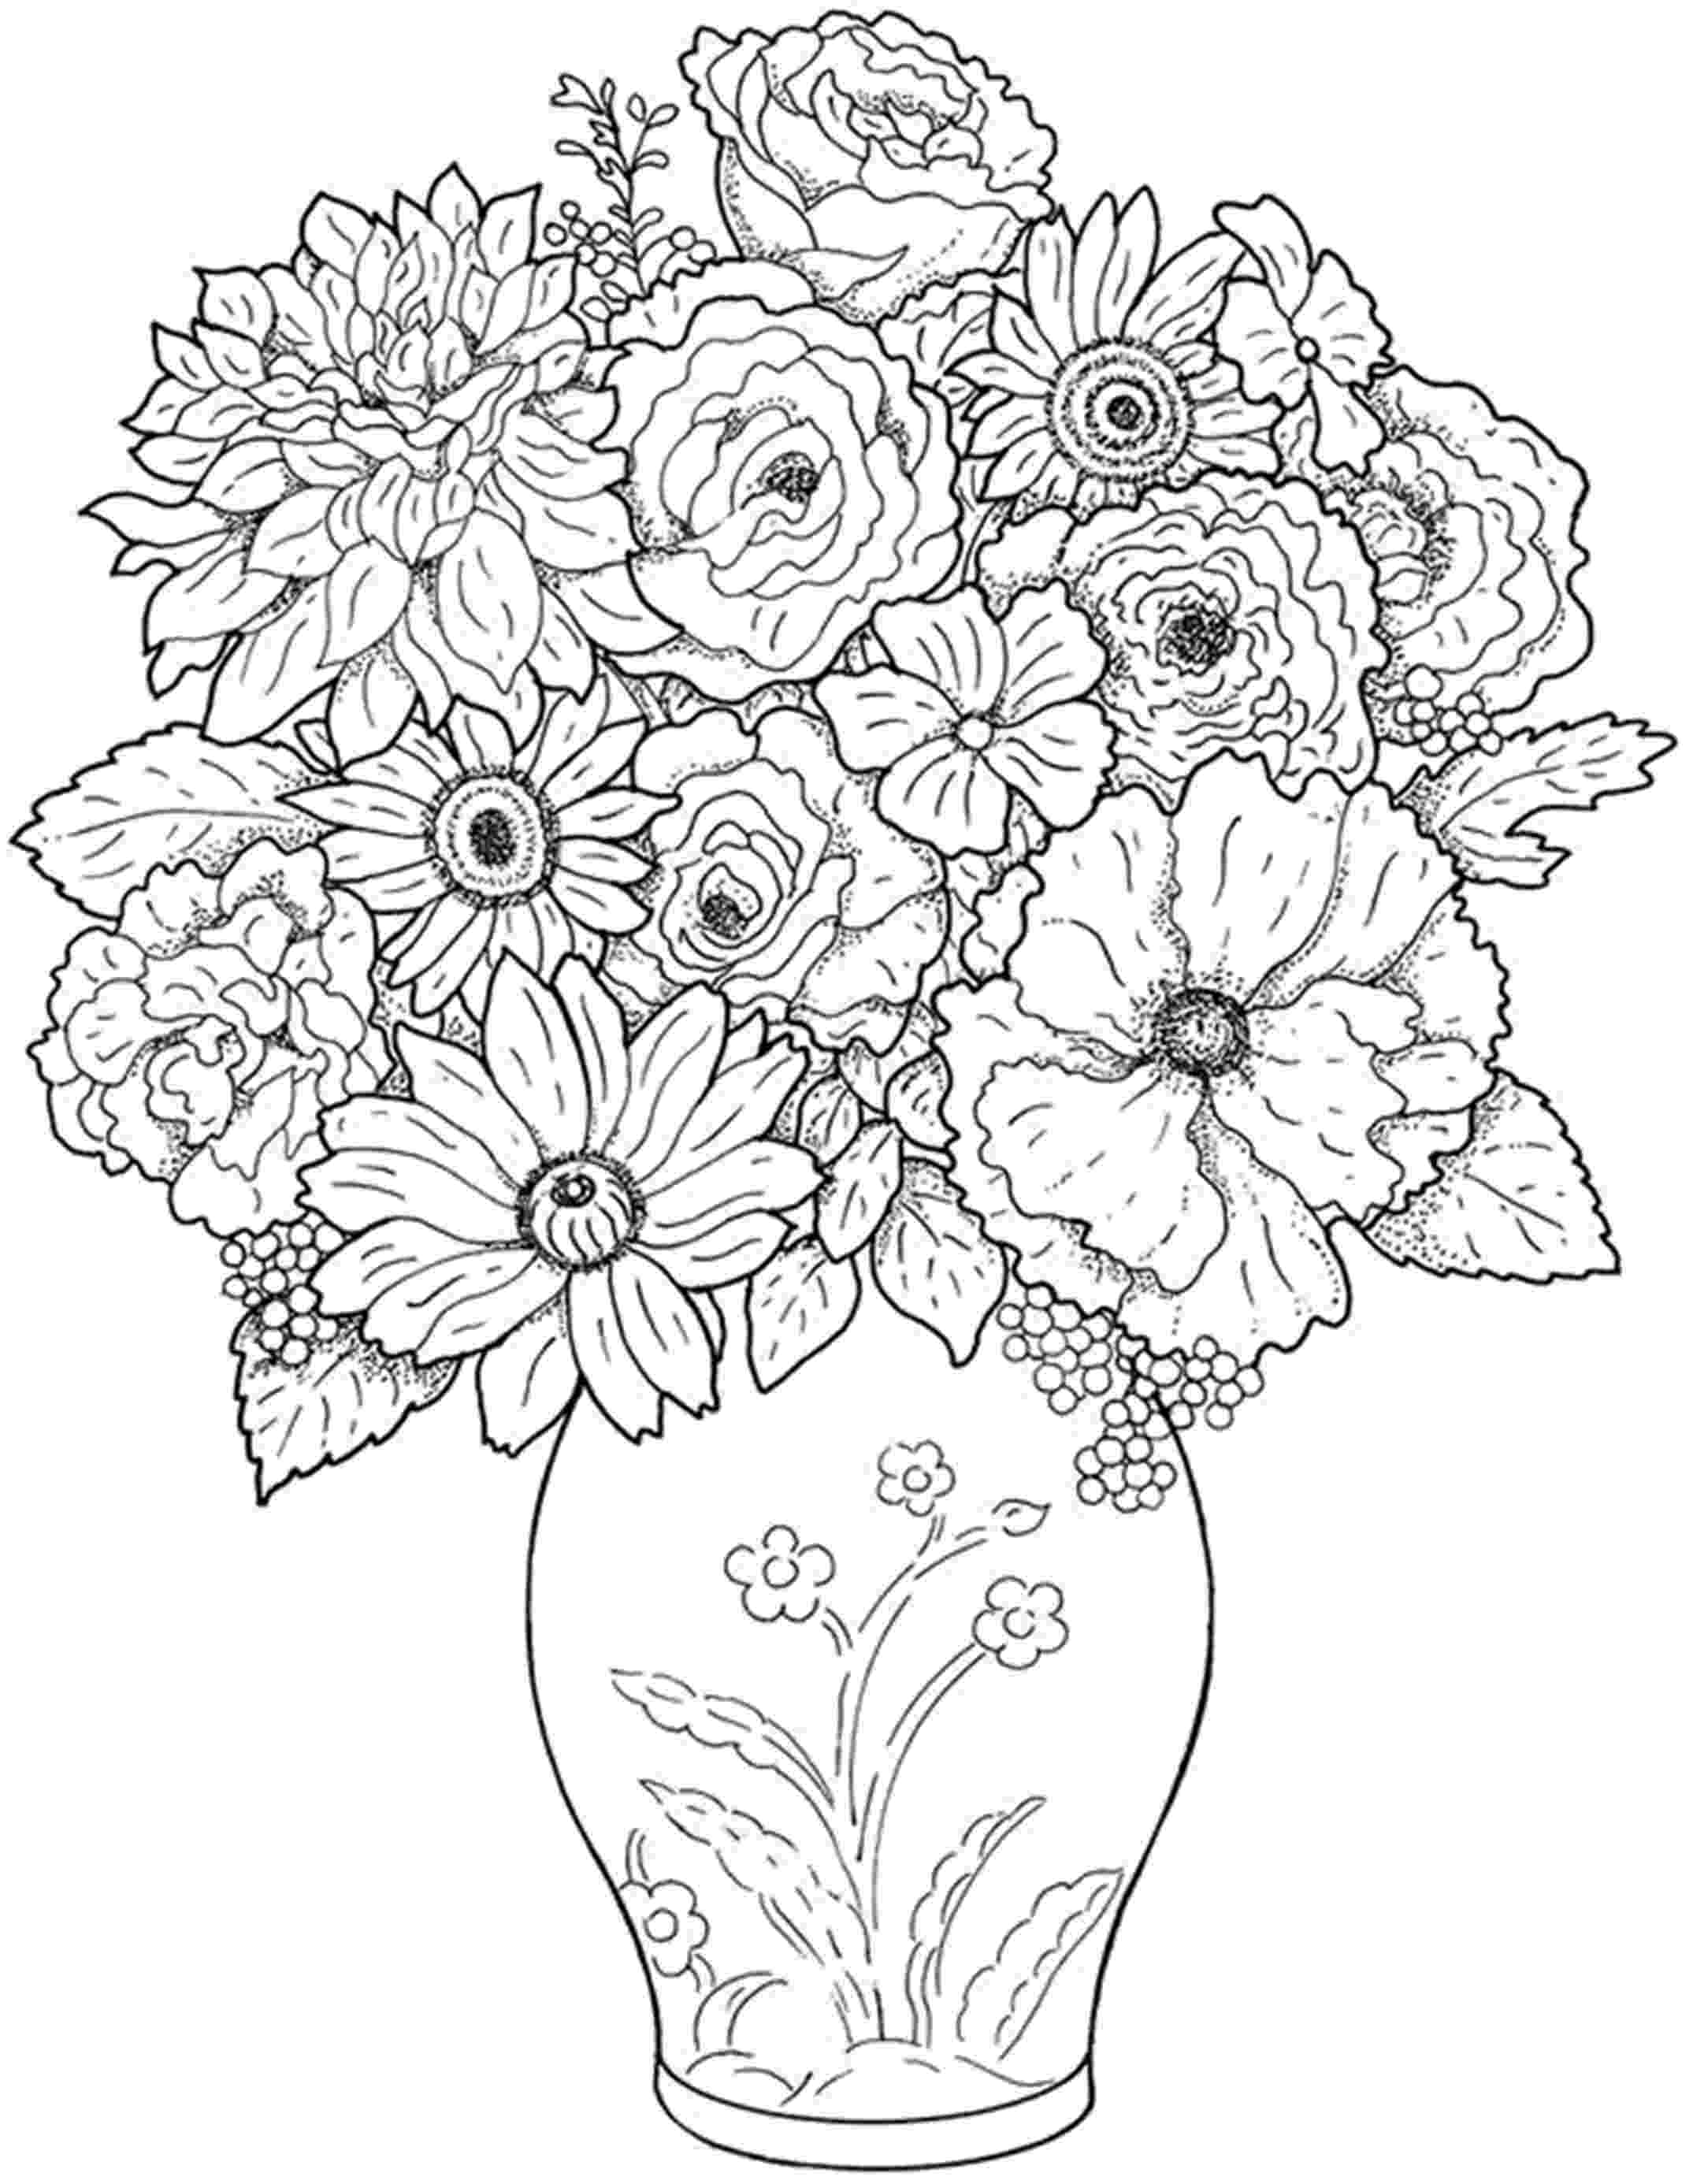 flowers coloring pages for kids free printable flower coloring pages for kids cool2bkids kids pages for flowers coloring